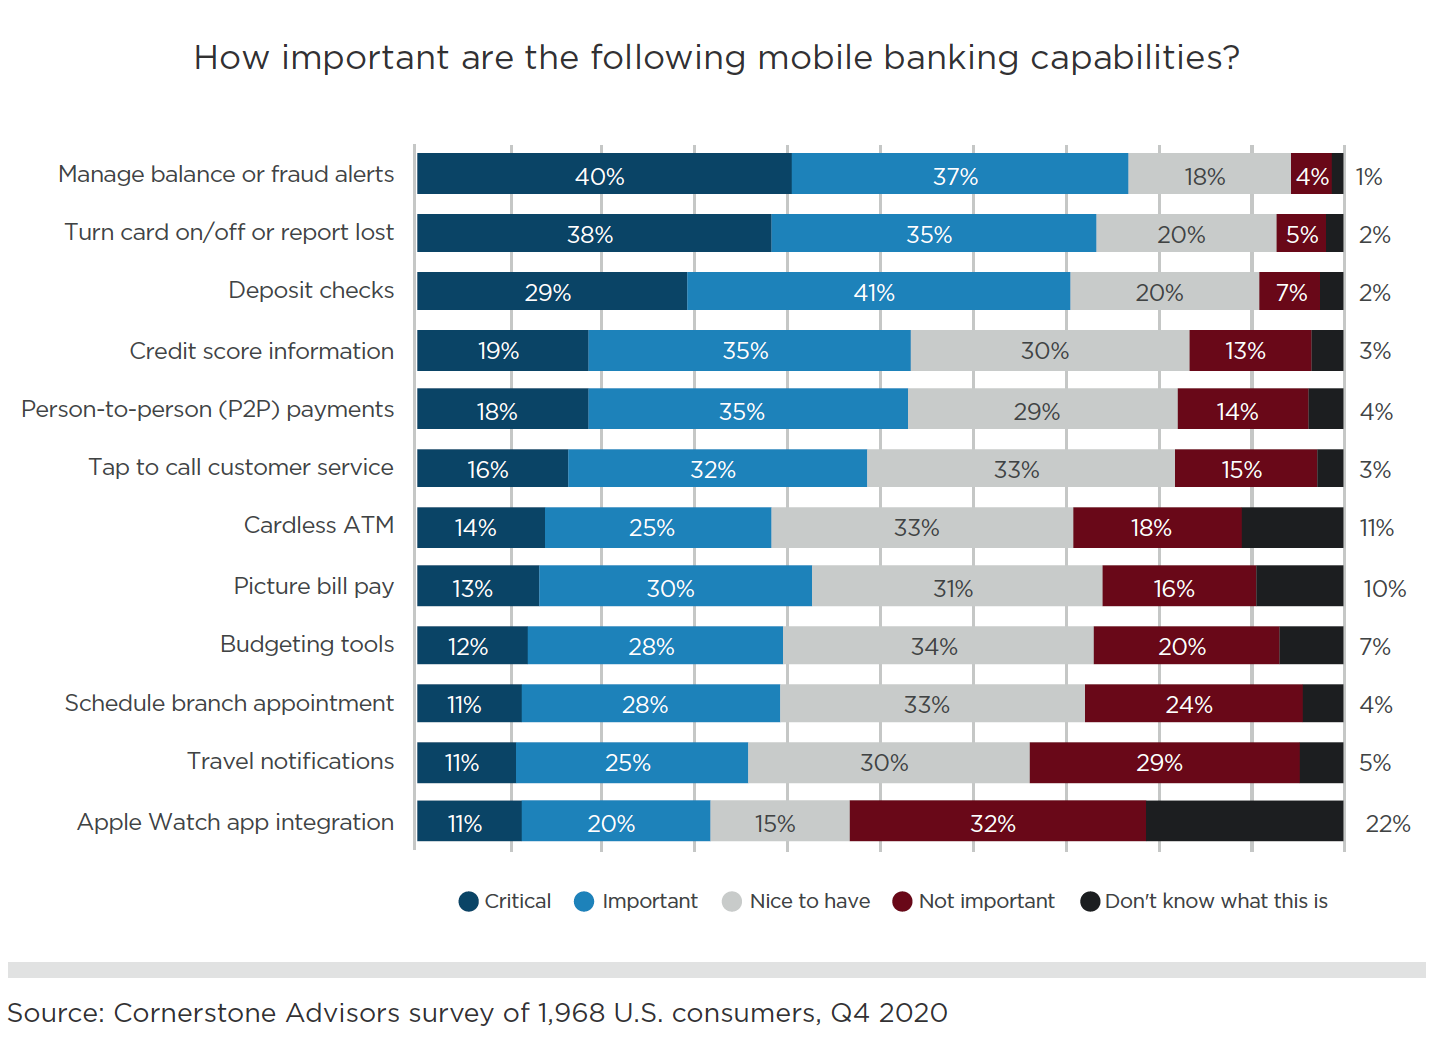 importance of mobile banking features 2020